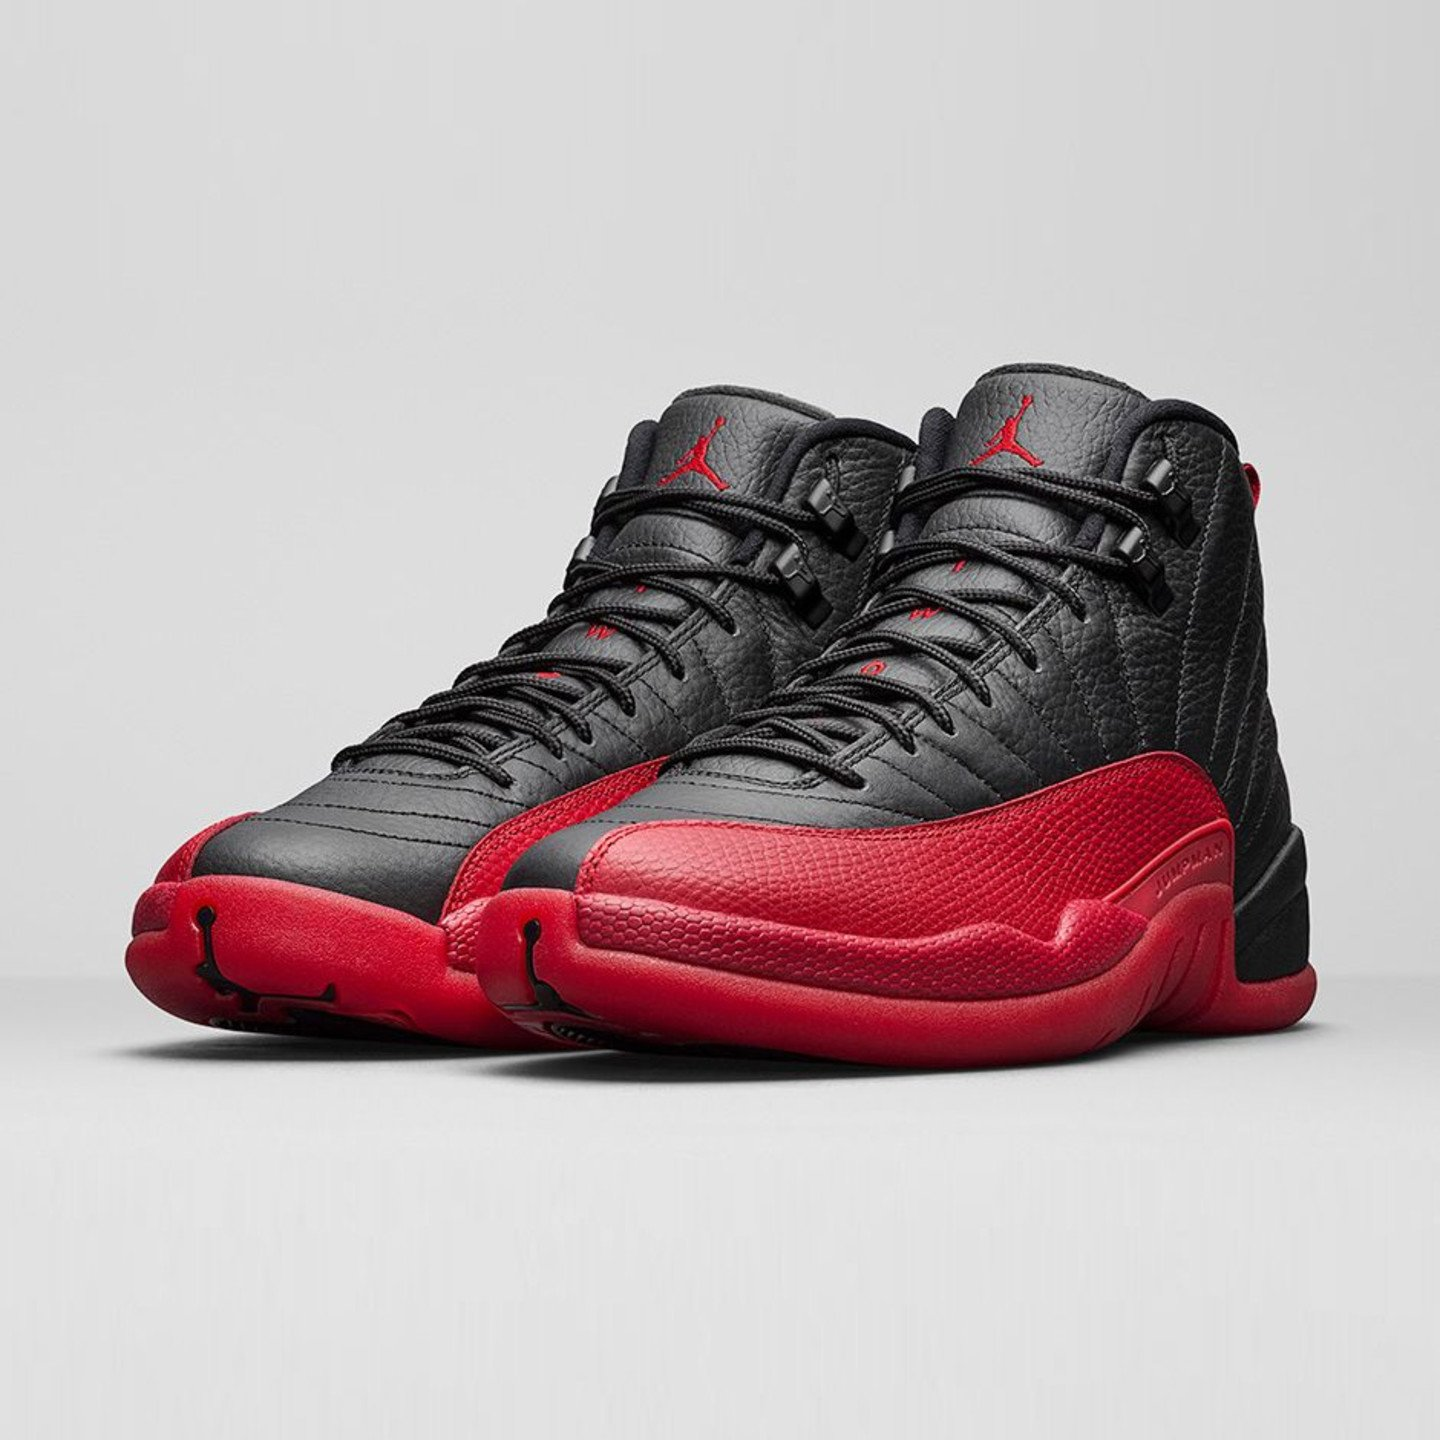 Jordan Air Jordan 12 Retro 'Flu Game' Black / Varsity Red 130690-002-42